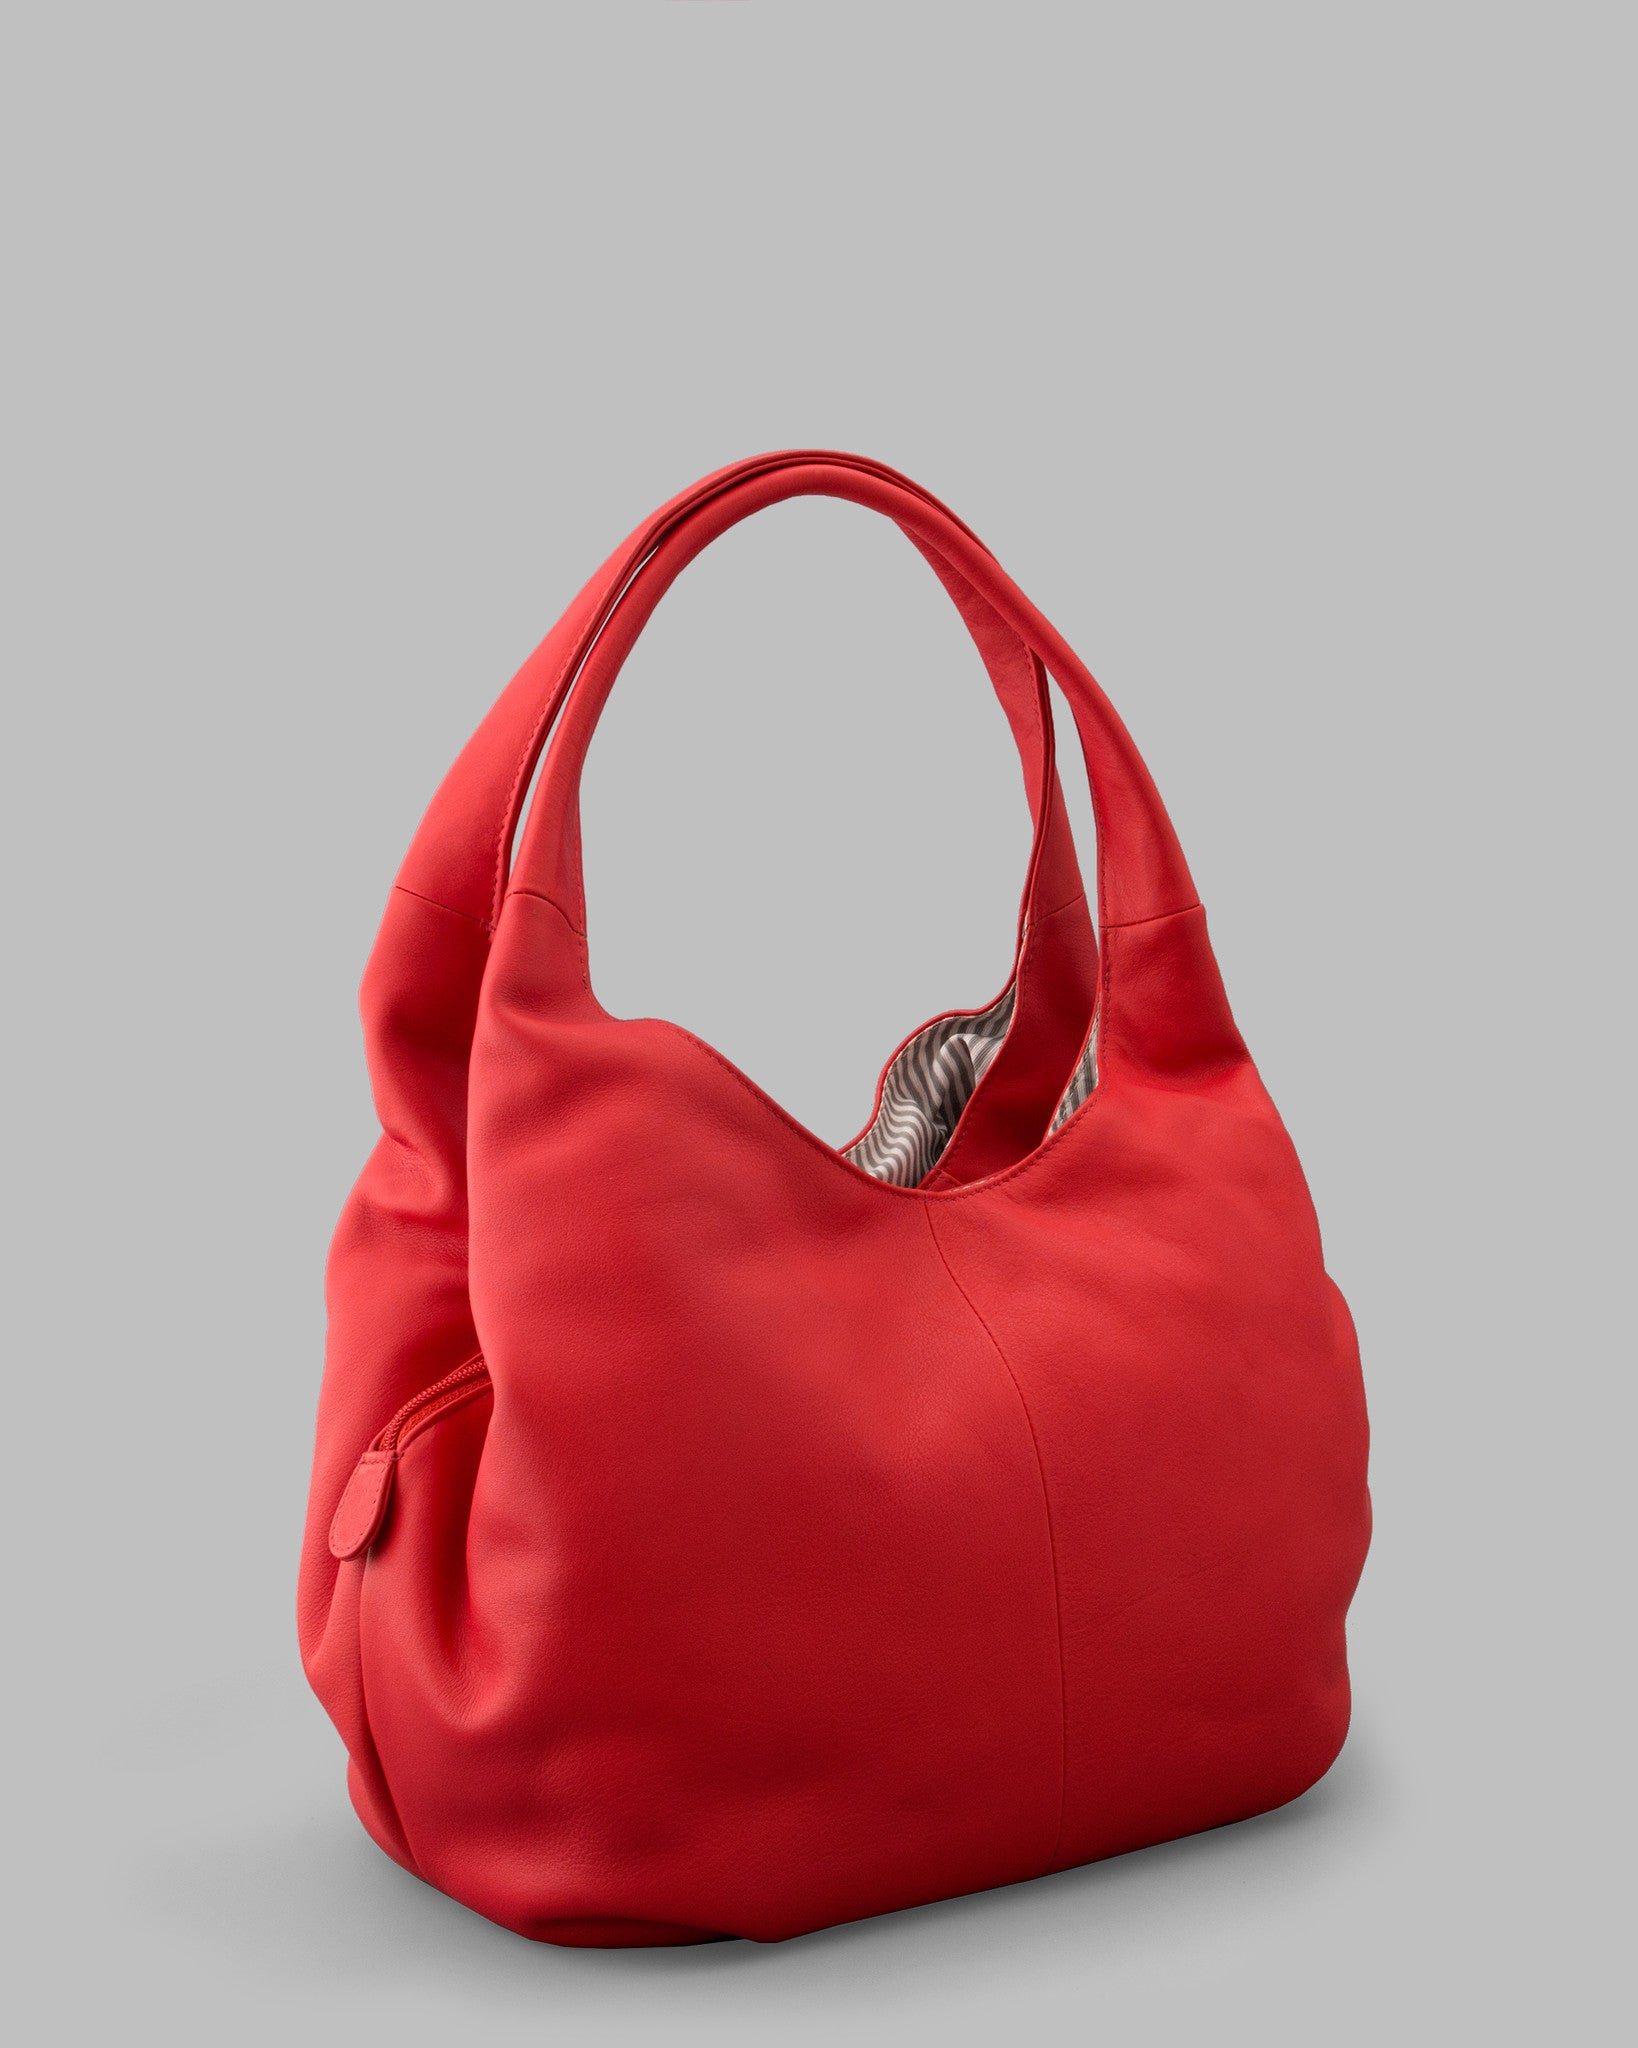 2a46bf3f74 Meehan Red Leather Slouch Shoulder Bag e. Yoshi Handbag Dustbag. Yoshi  Handbag Dustbag. Yoshi   Shoulder Bag